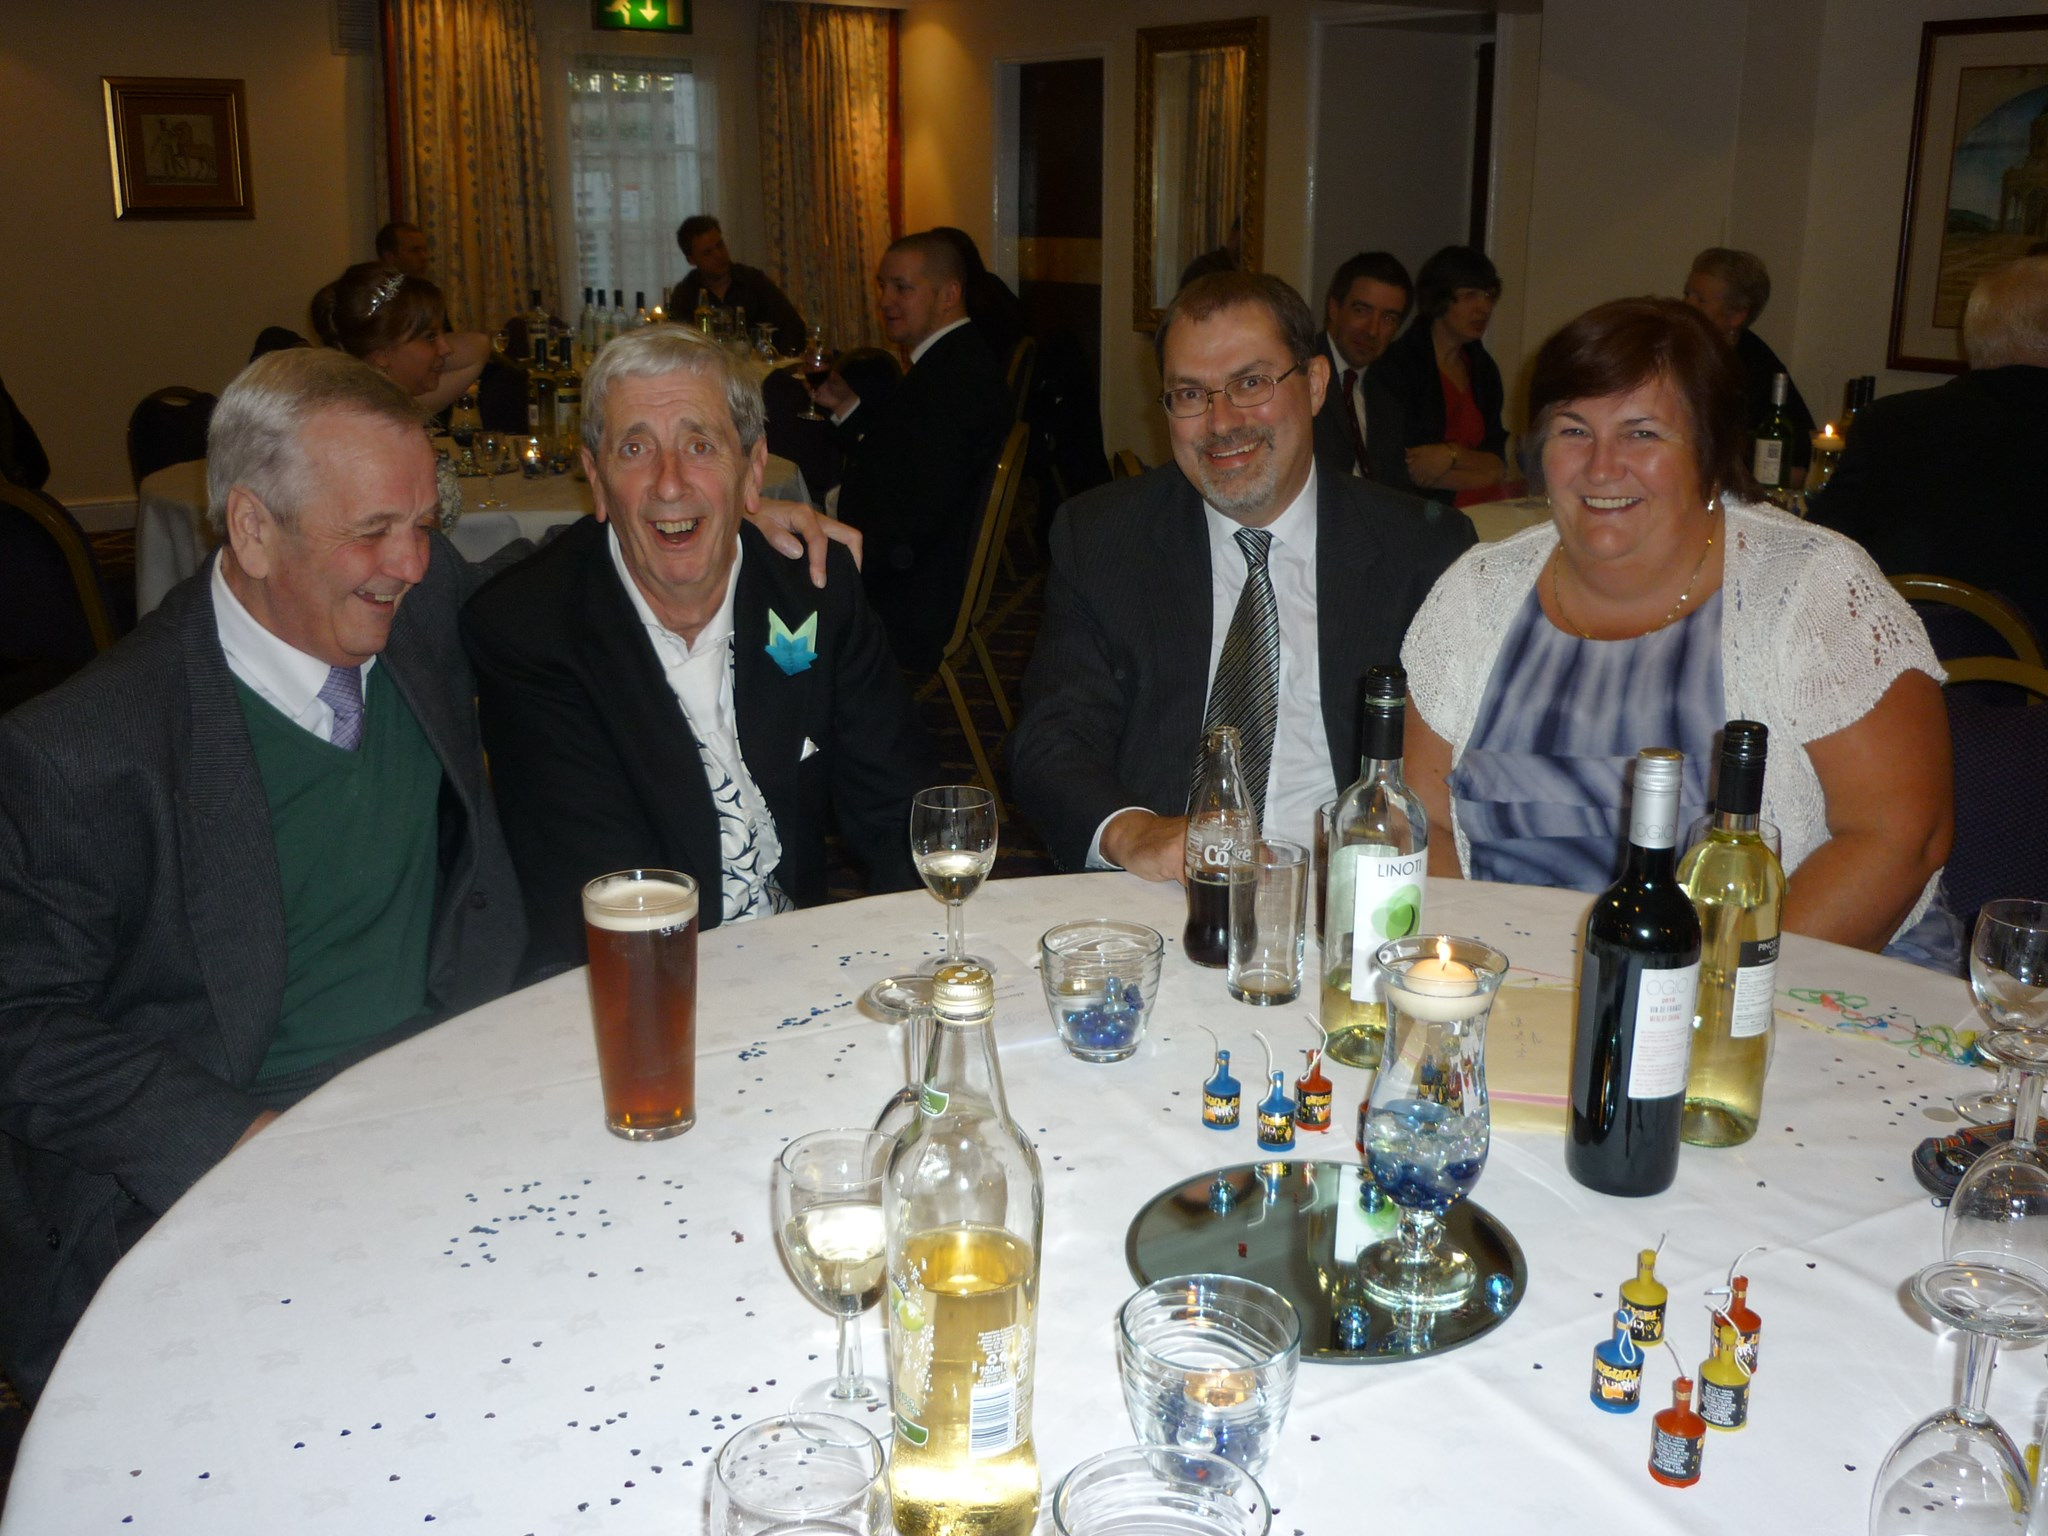 Russell, Jane & Bill with Colin @ Tim 's wedding - 2012